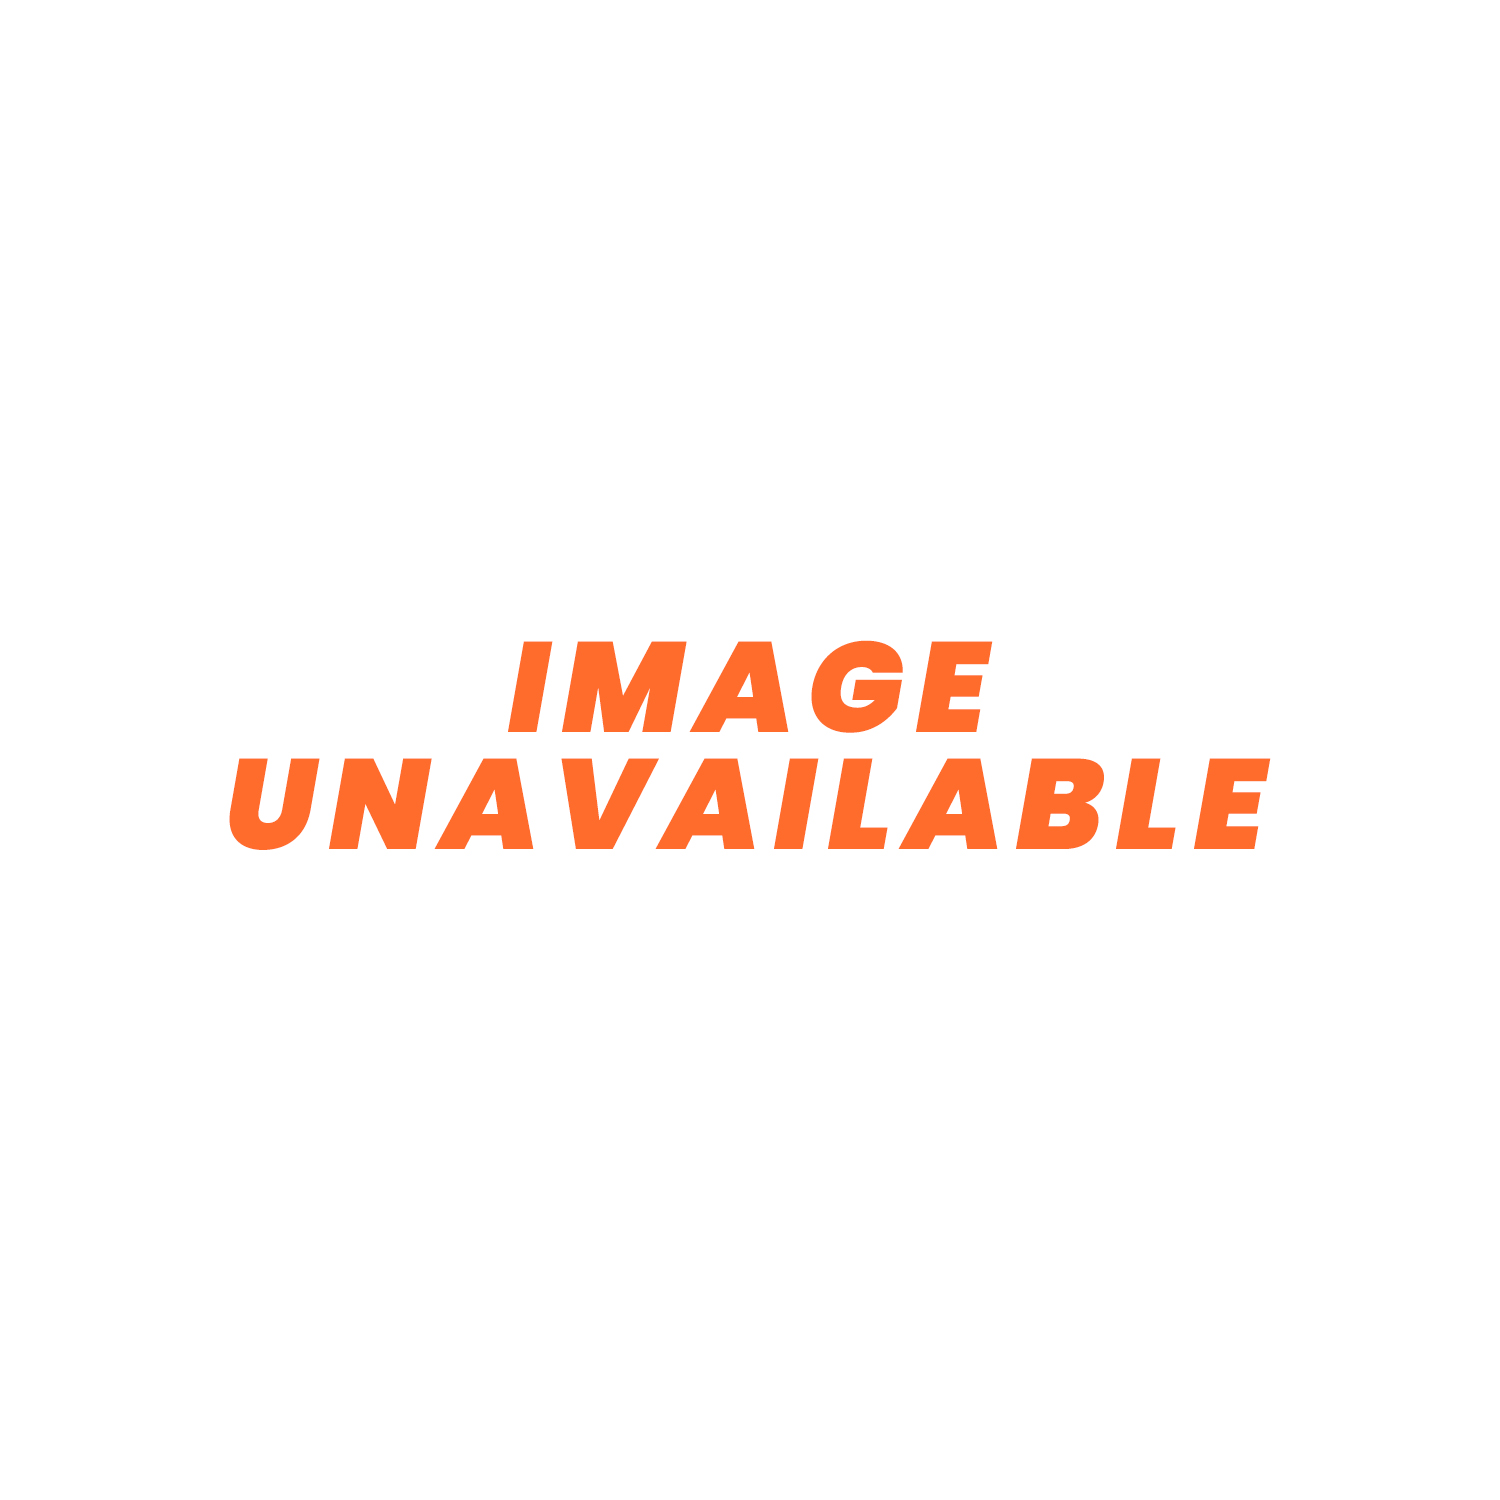 Watch moreover Hvac Systems Main Equipment further Geothermal From Mountaineer Mechanical And Trane furthermore Adding Electric Fireplace Rv further Solar Chiller Applications. on electric cooling and heating units